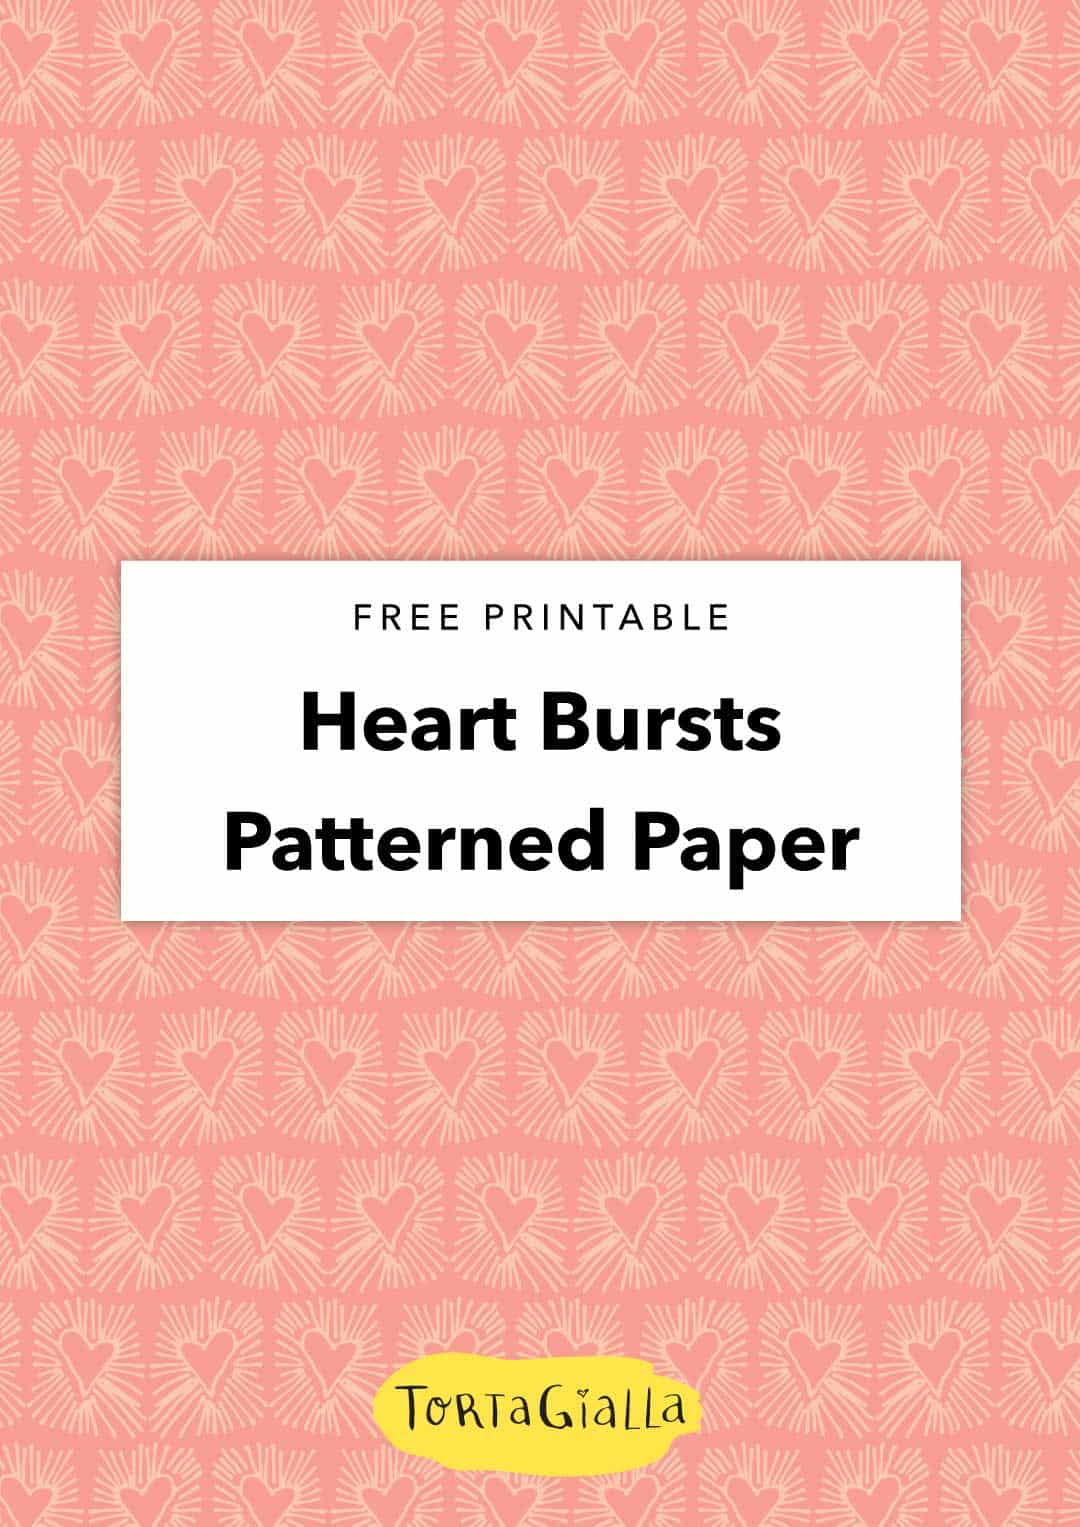 Looking for free scrapbook paper downloads? Here's a fun heart burst patterned paper design that you can use in all kinds of papercrafting projects.